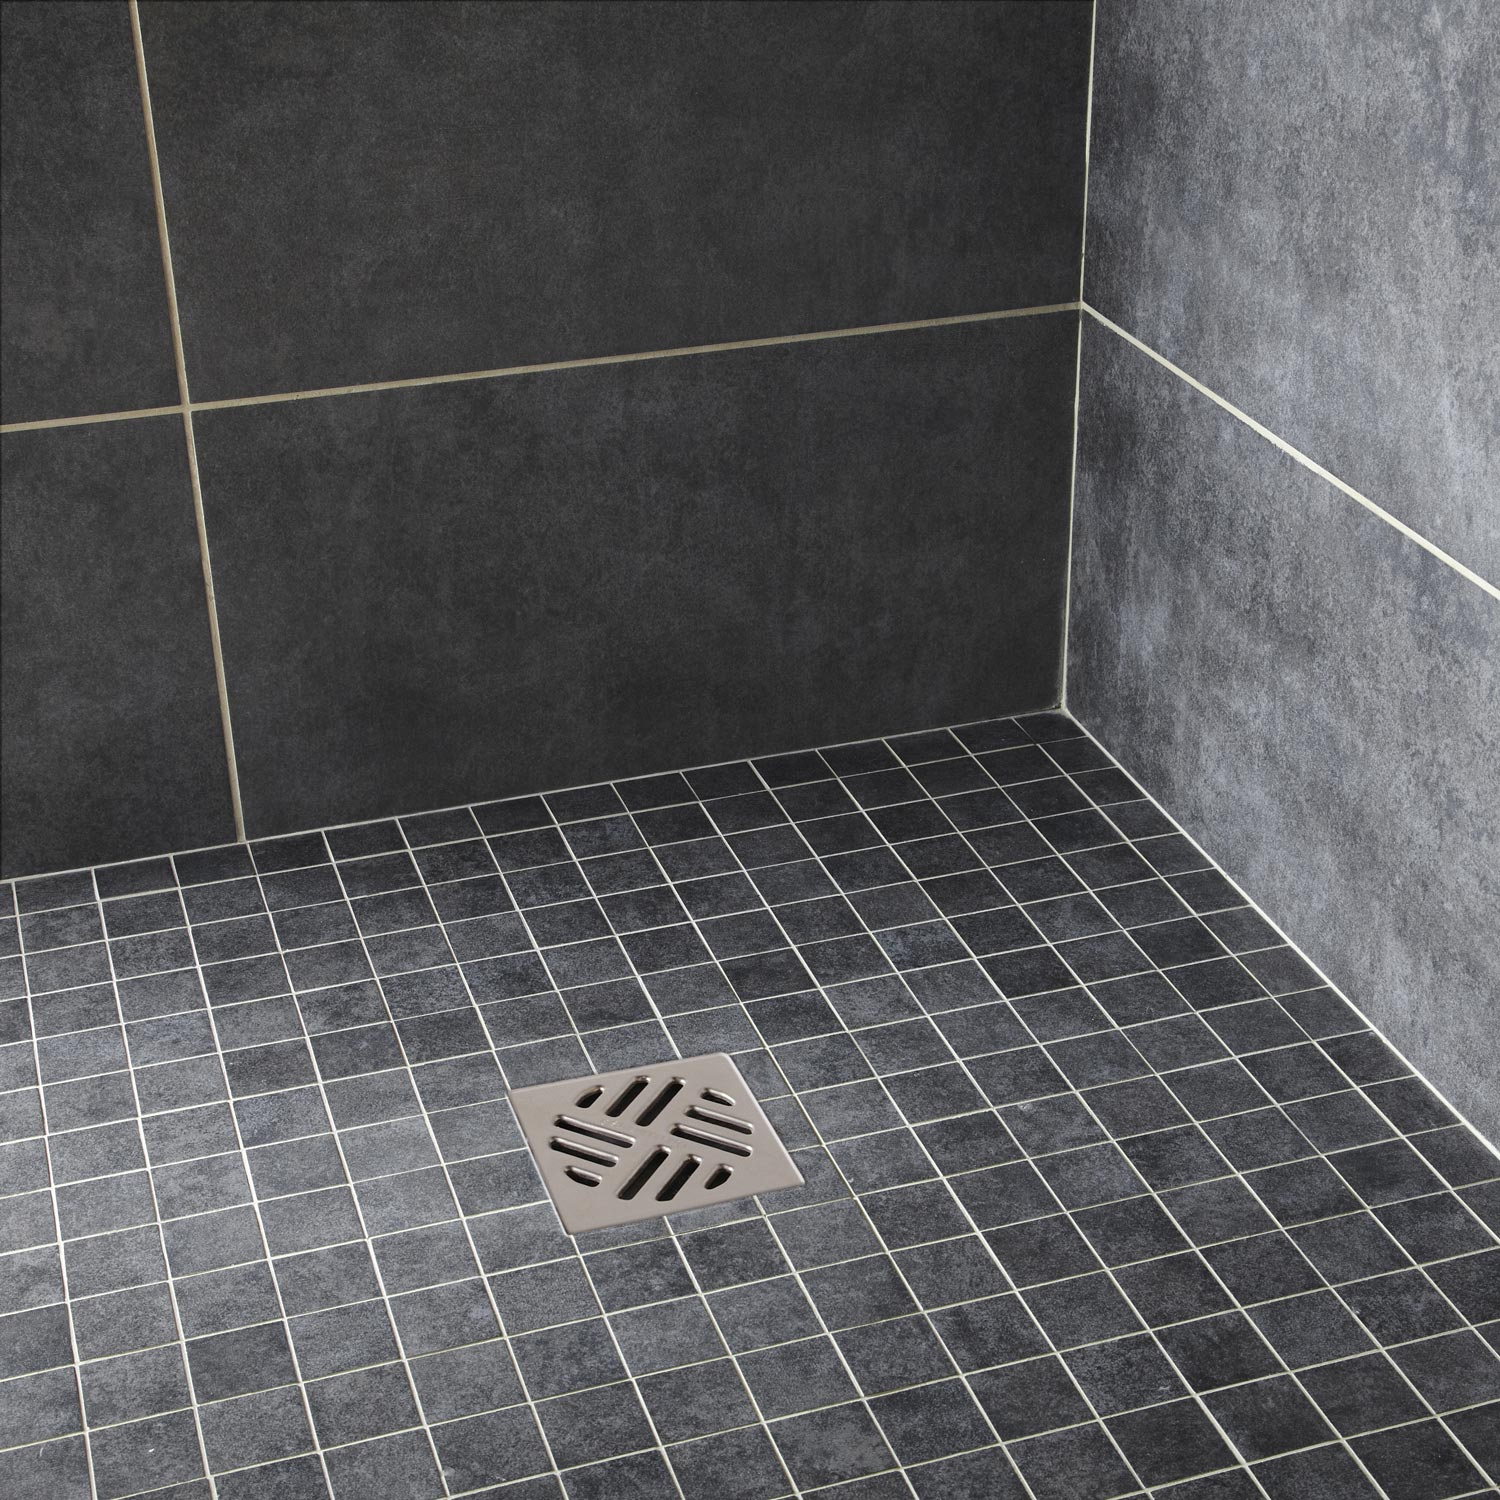 Salle de bain travertin leroy merlin for Carrelage mosaique leroy merlin